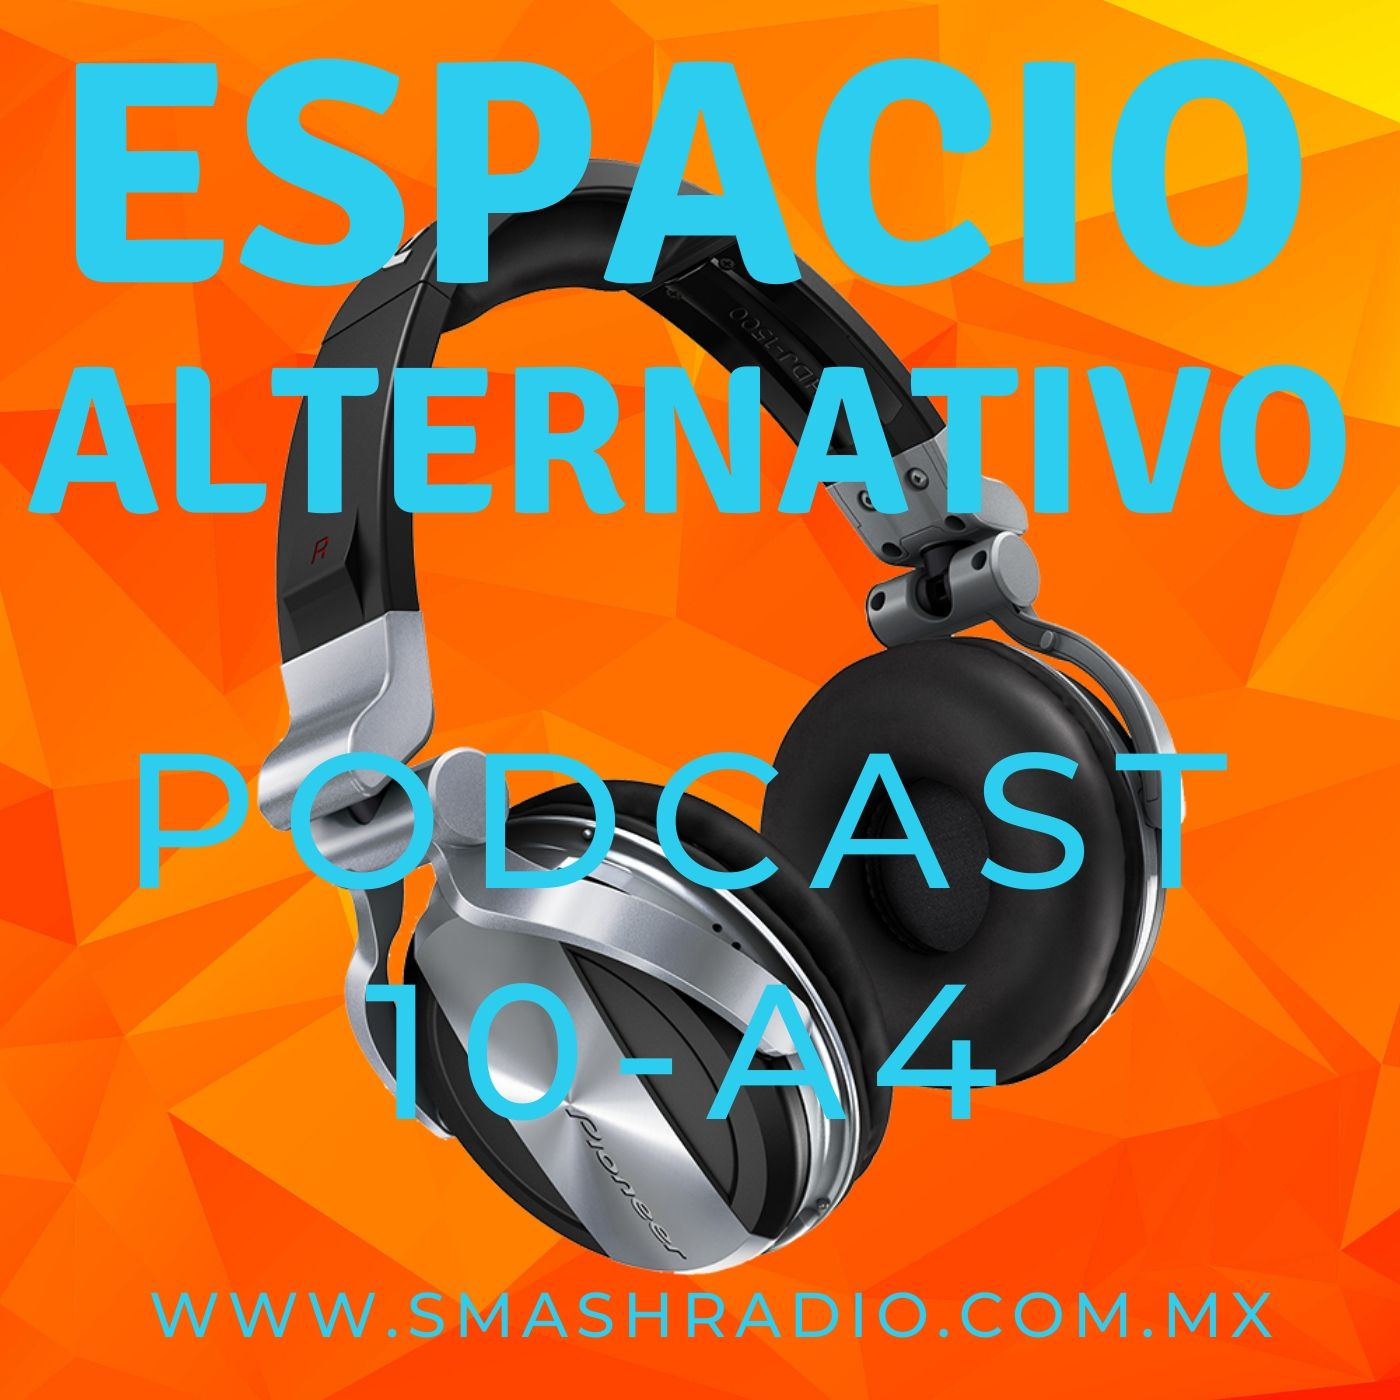 Espacio_Alternativo_Podcast_10-a4